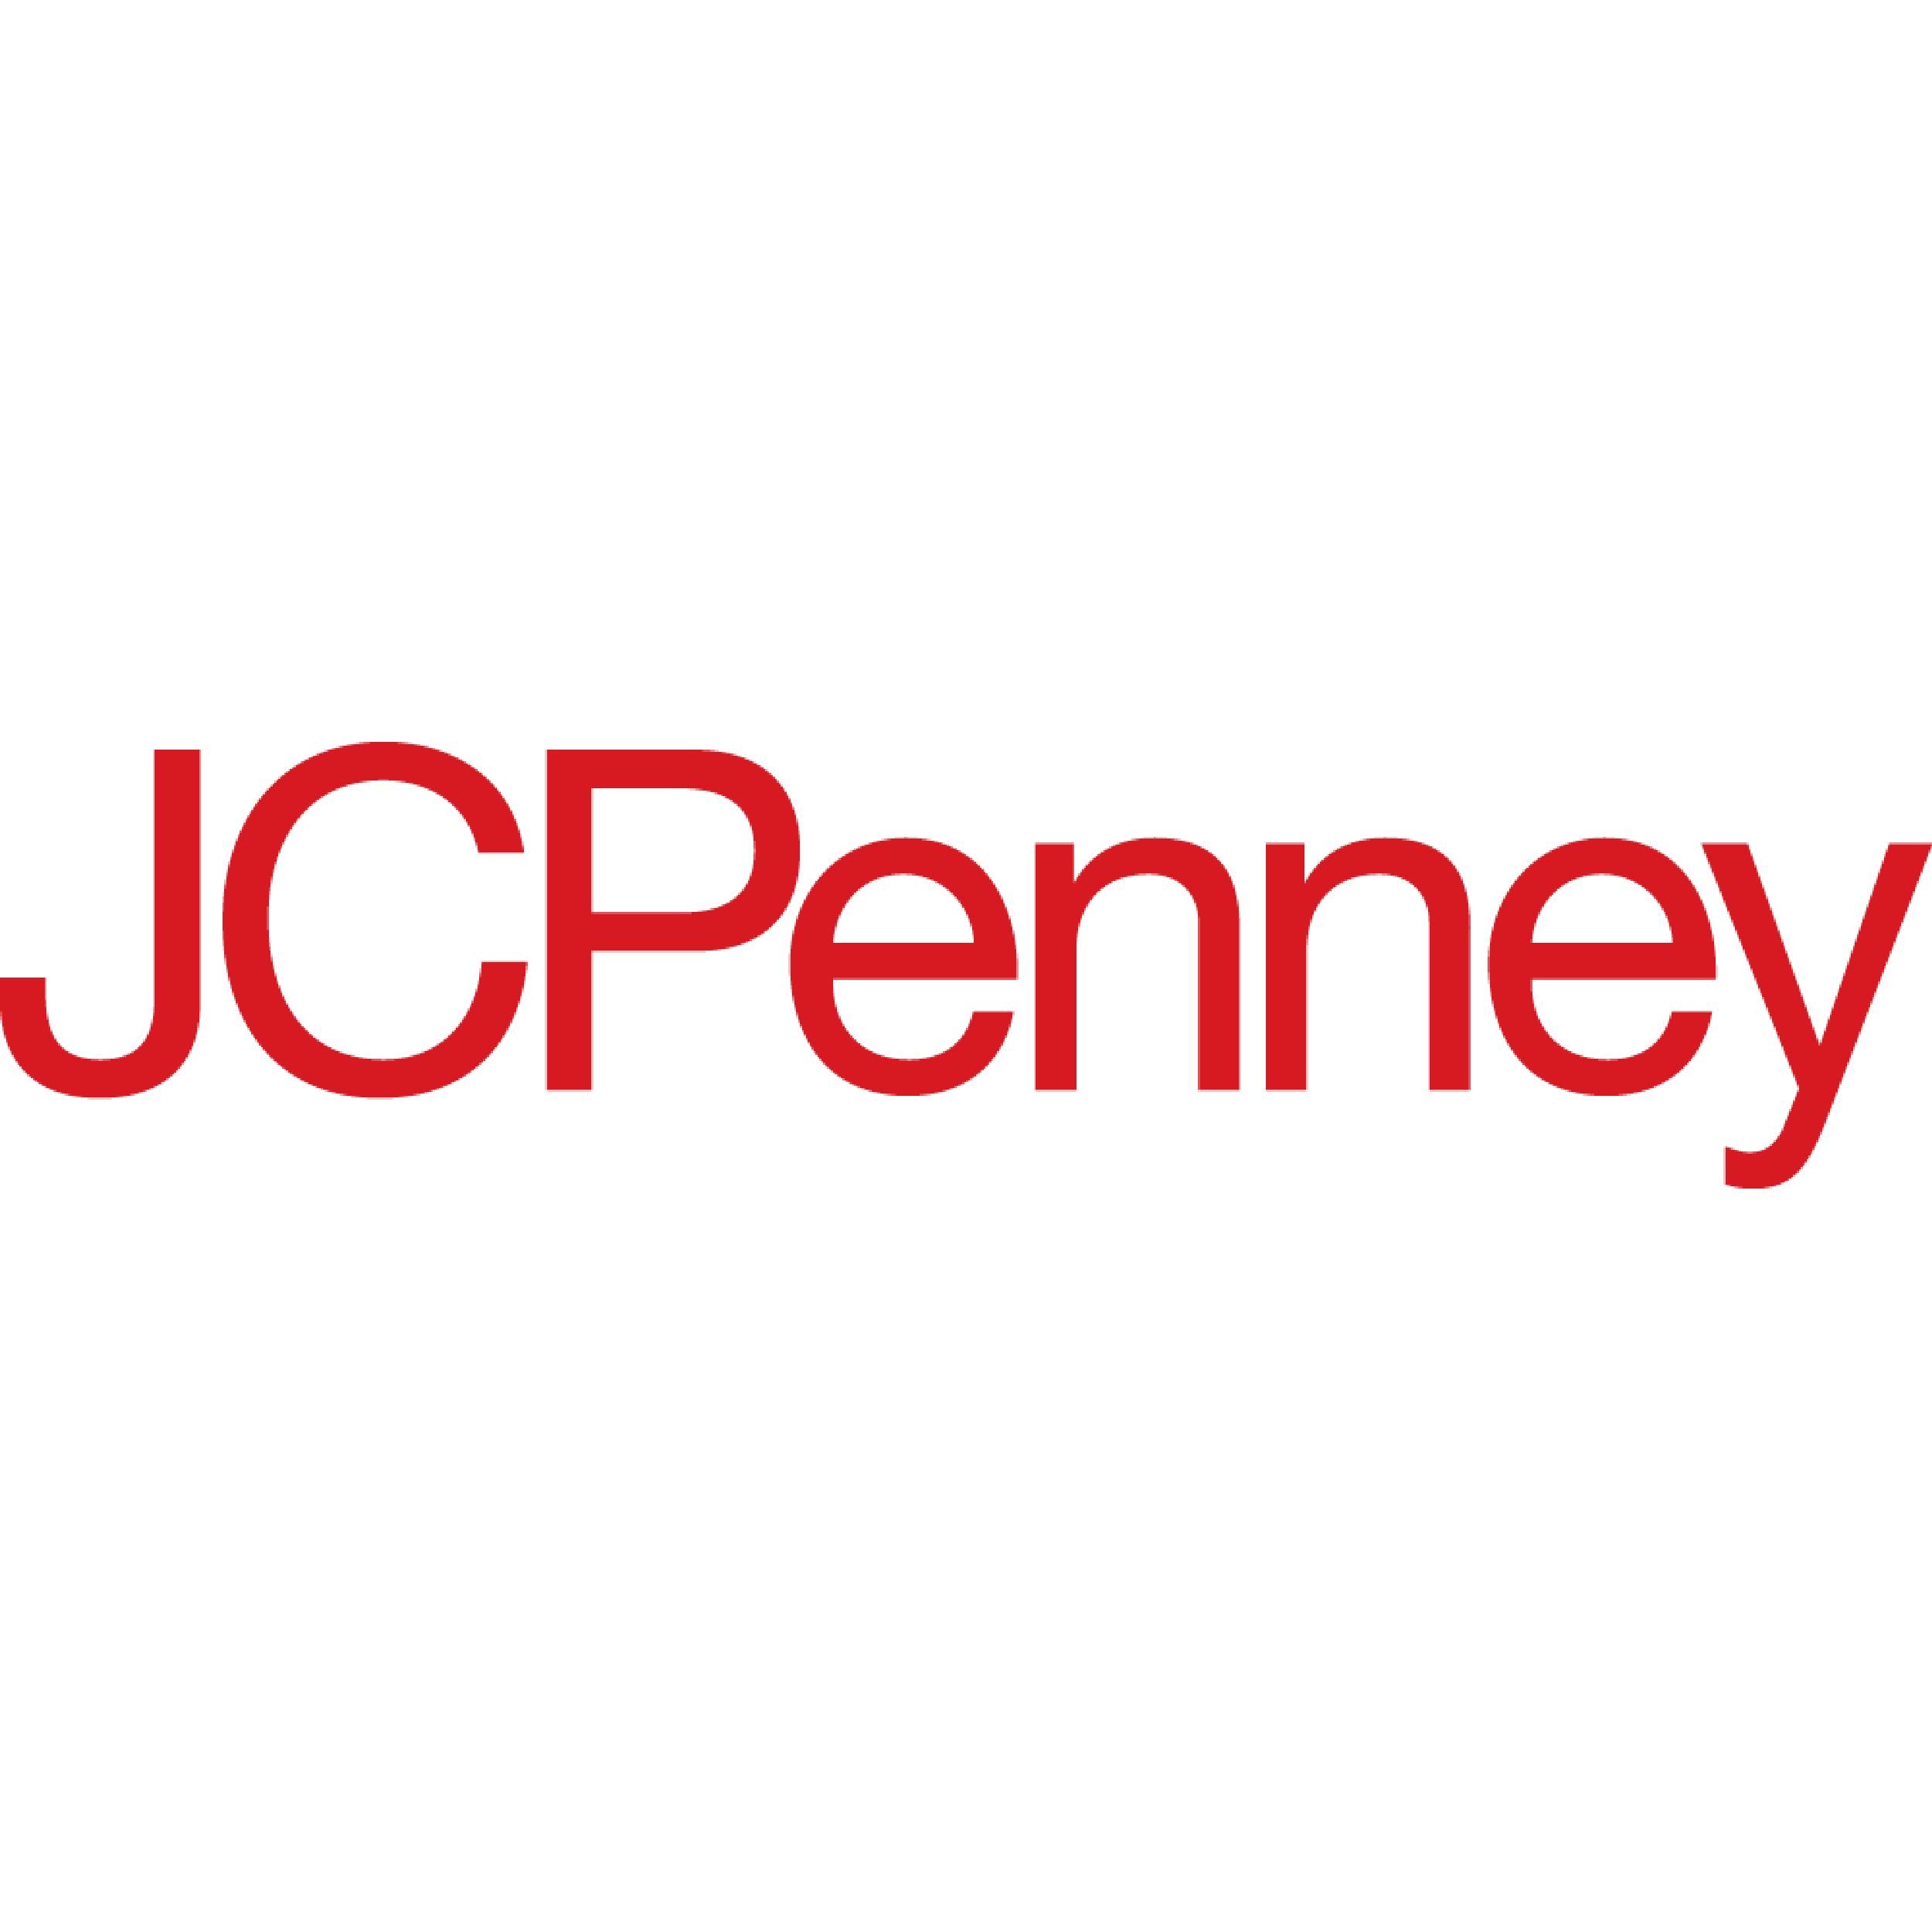 JCPenney Final Take